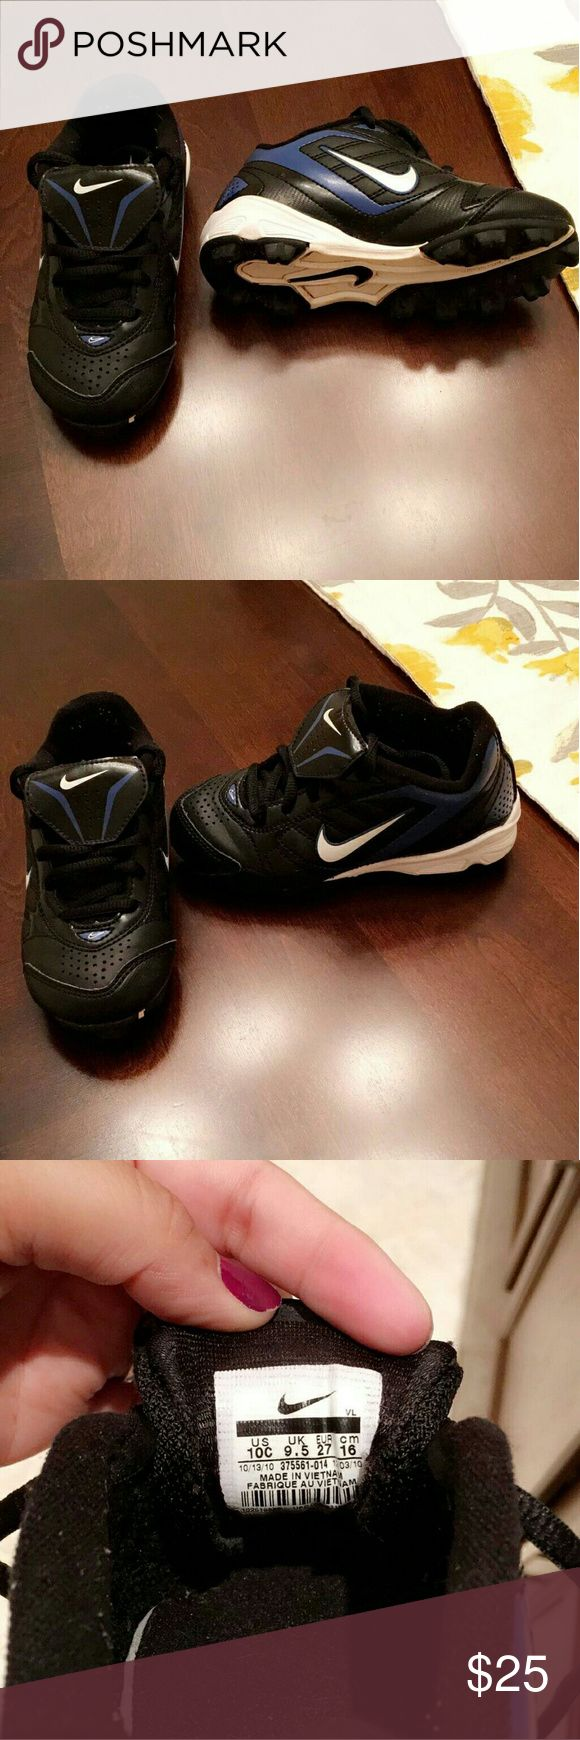 Nike baseball cleats Black, blue and white Nike baseball toddler cleats. In great condition. Nike Shoes